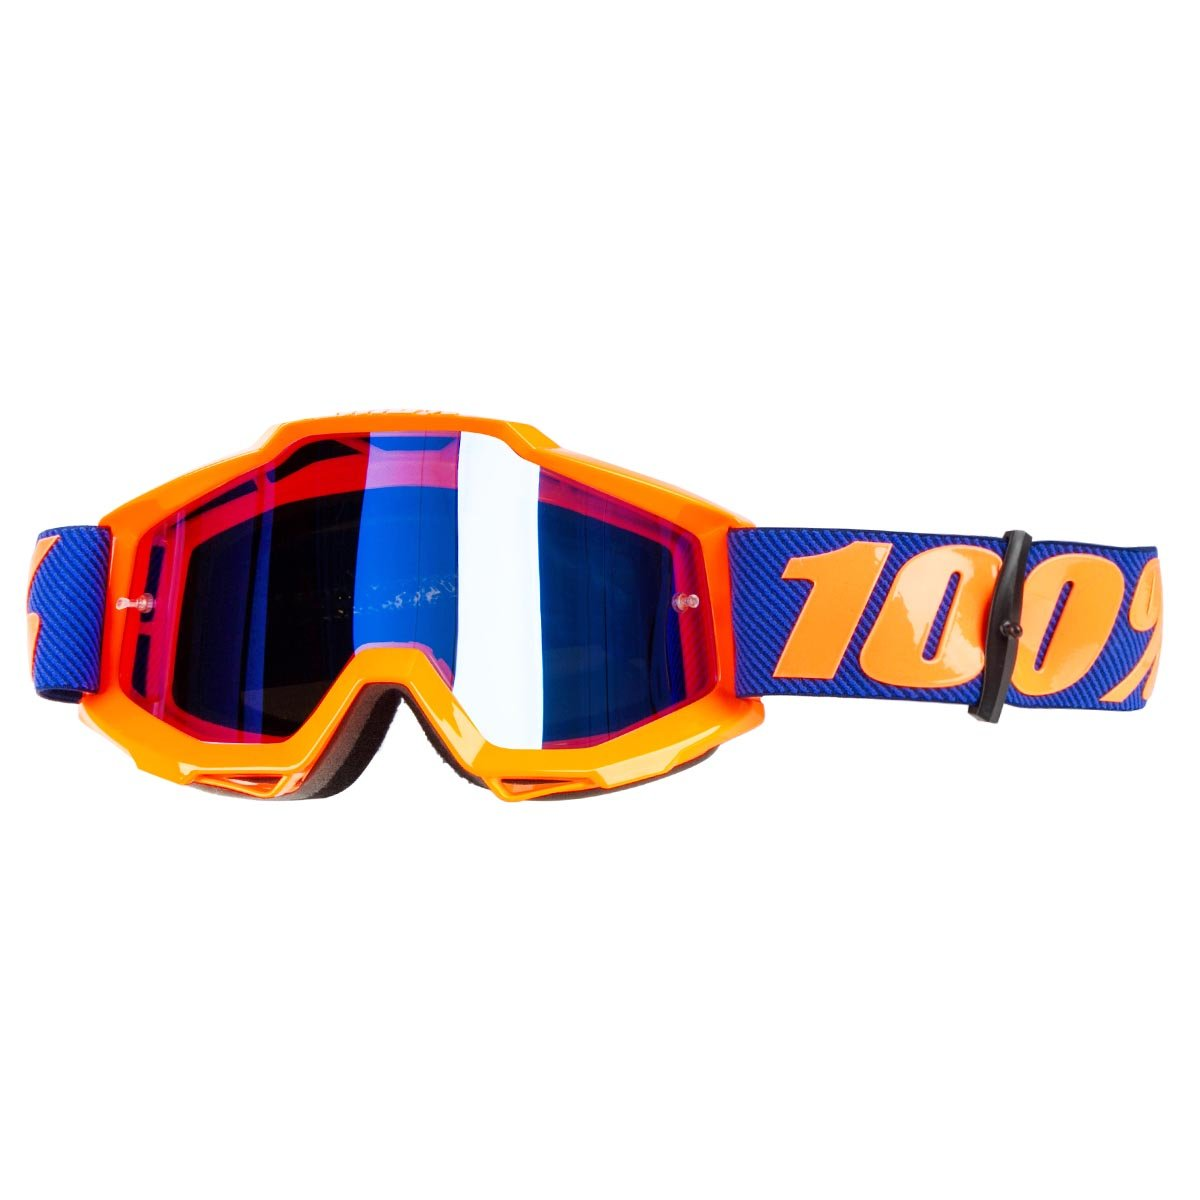 100% Crossbrille The Accuri Origami - Blau verspiegelt Anti-Fog